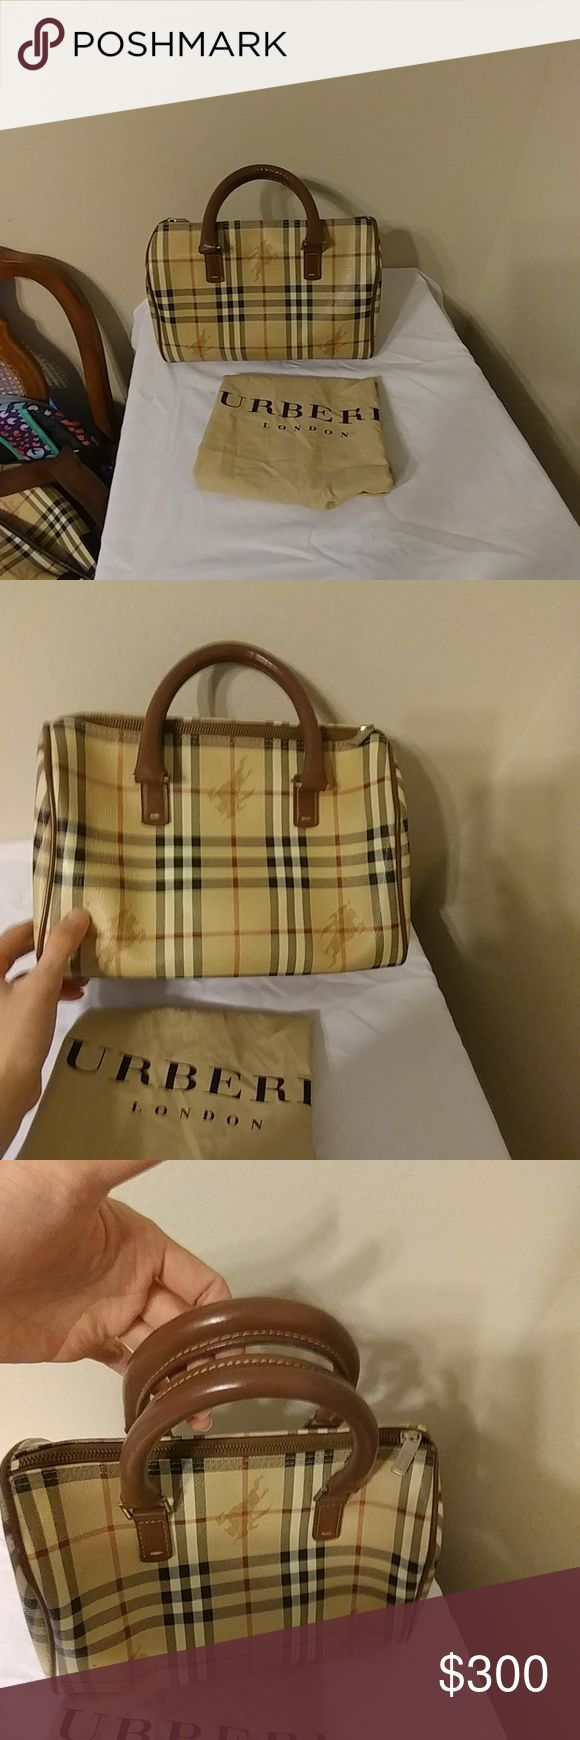 Burberry bag Pre owned. Authentic Burberry bag just have lit bit stain that you can see in photos overall very good condition..please check all photos Burberry Bags Mini Bags